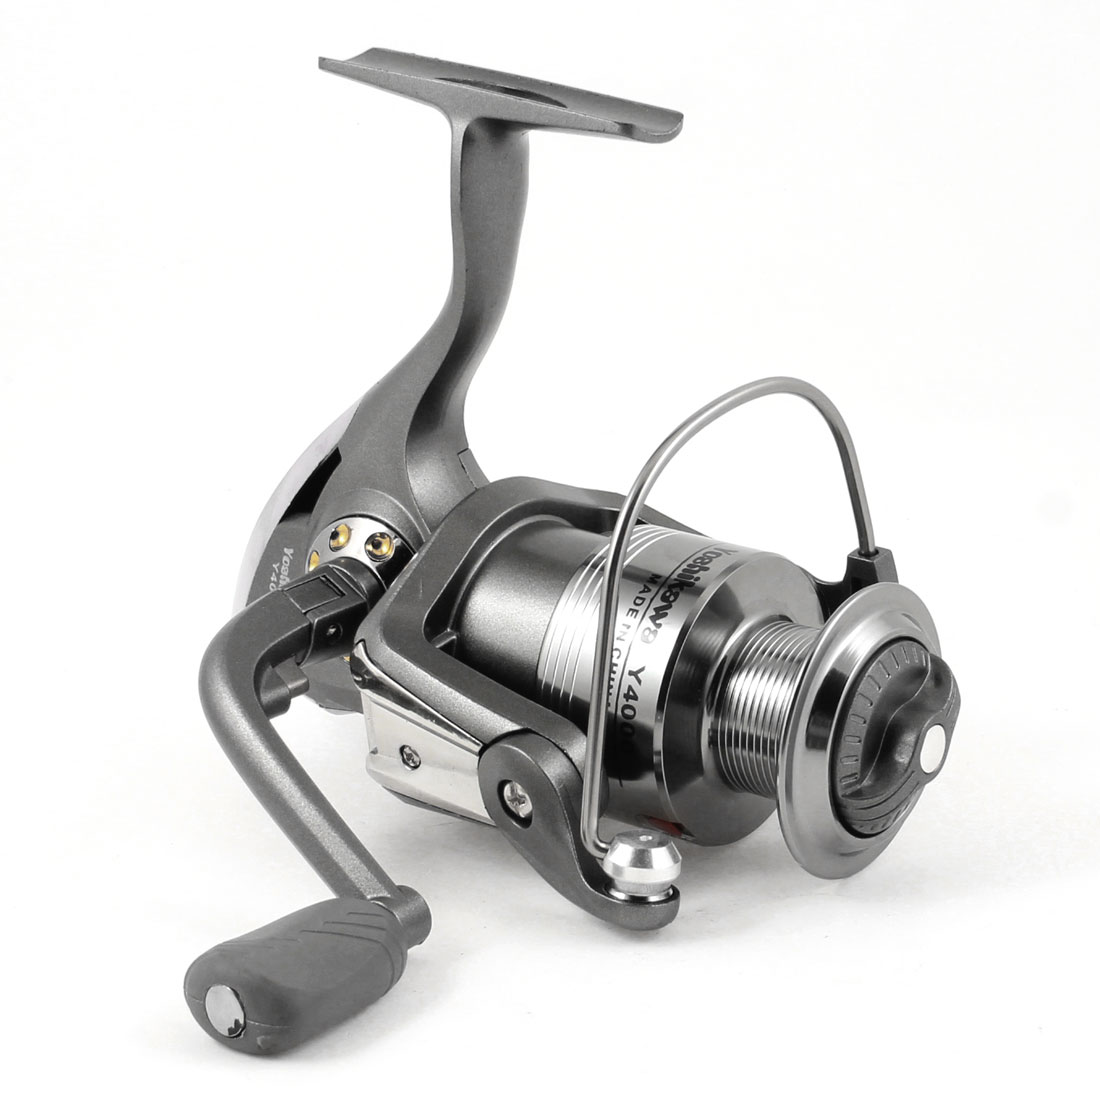 4.7:1 Gear Ratio 5 Ball Bearing Dark Gray Angling Fishing Spinning Reel